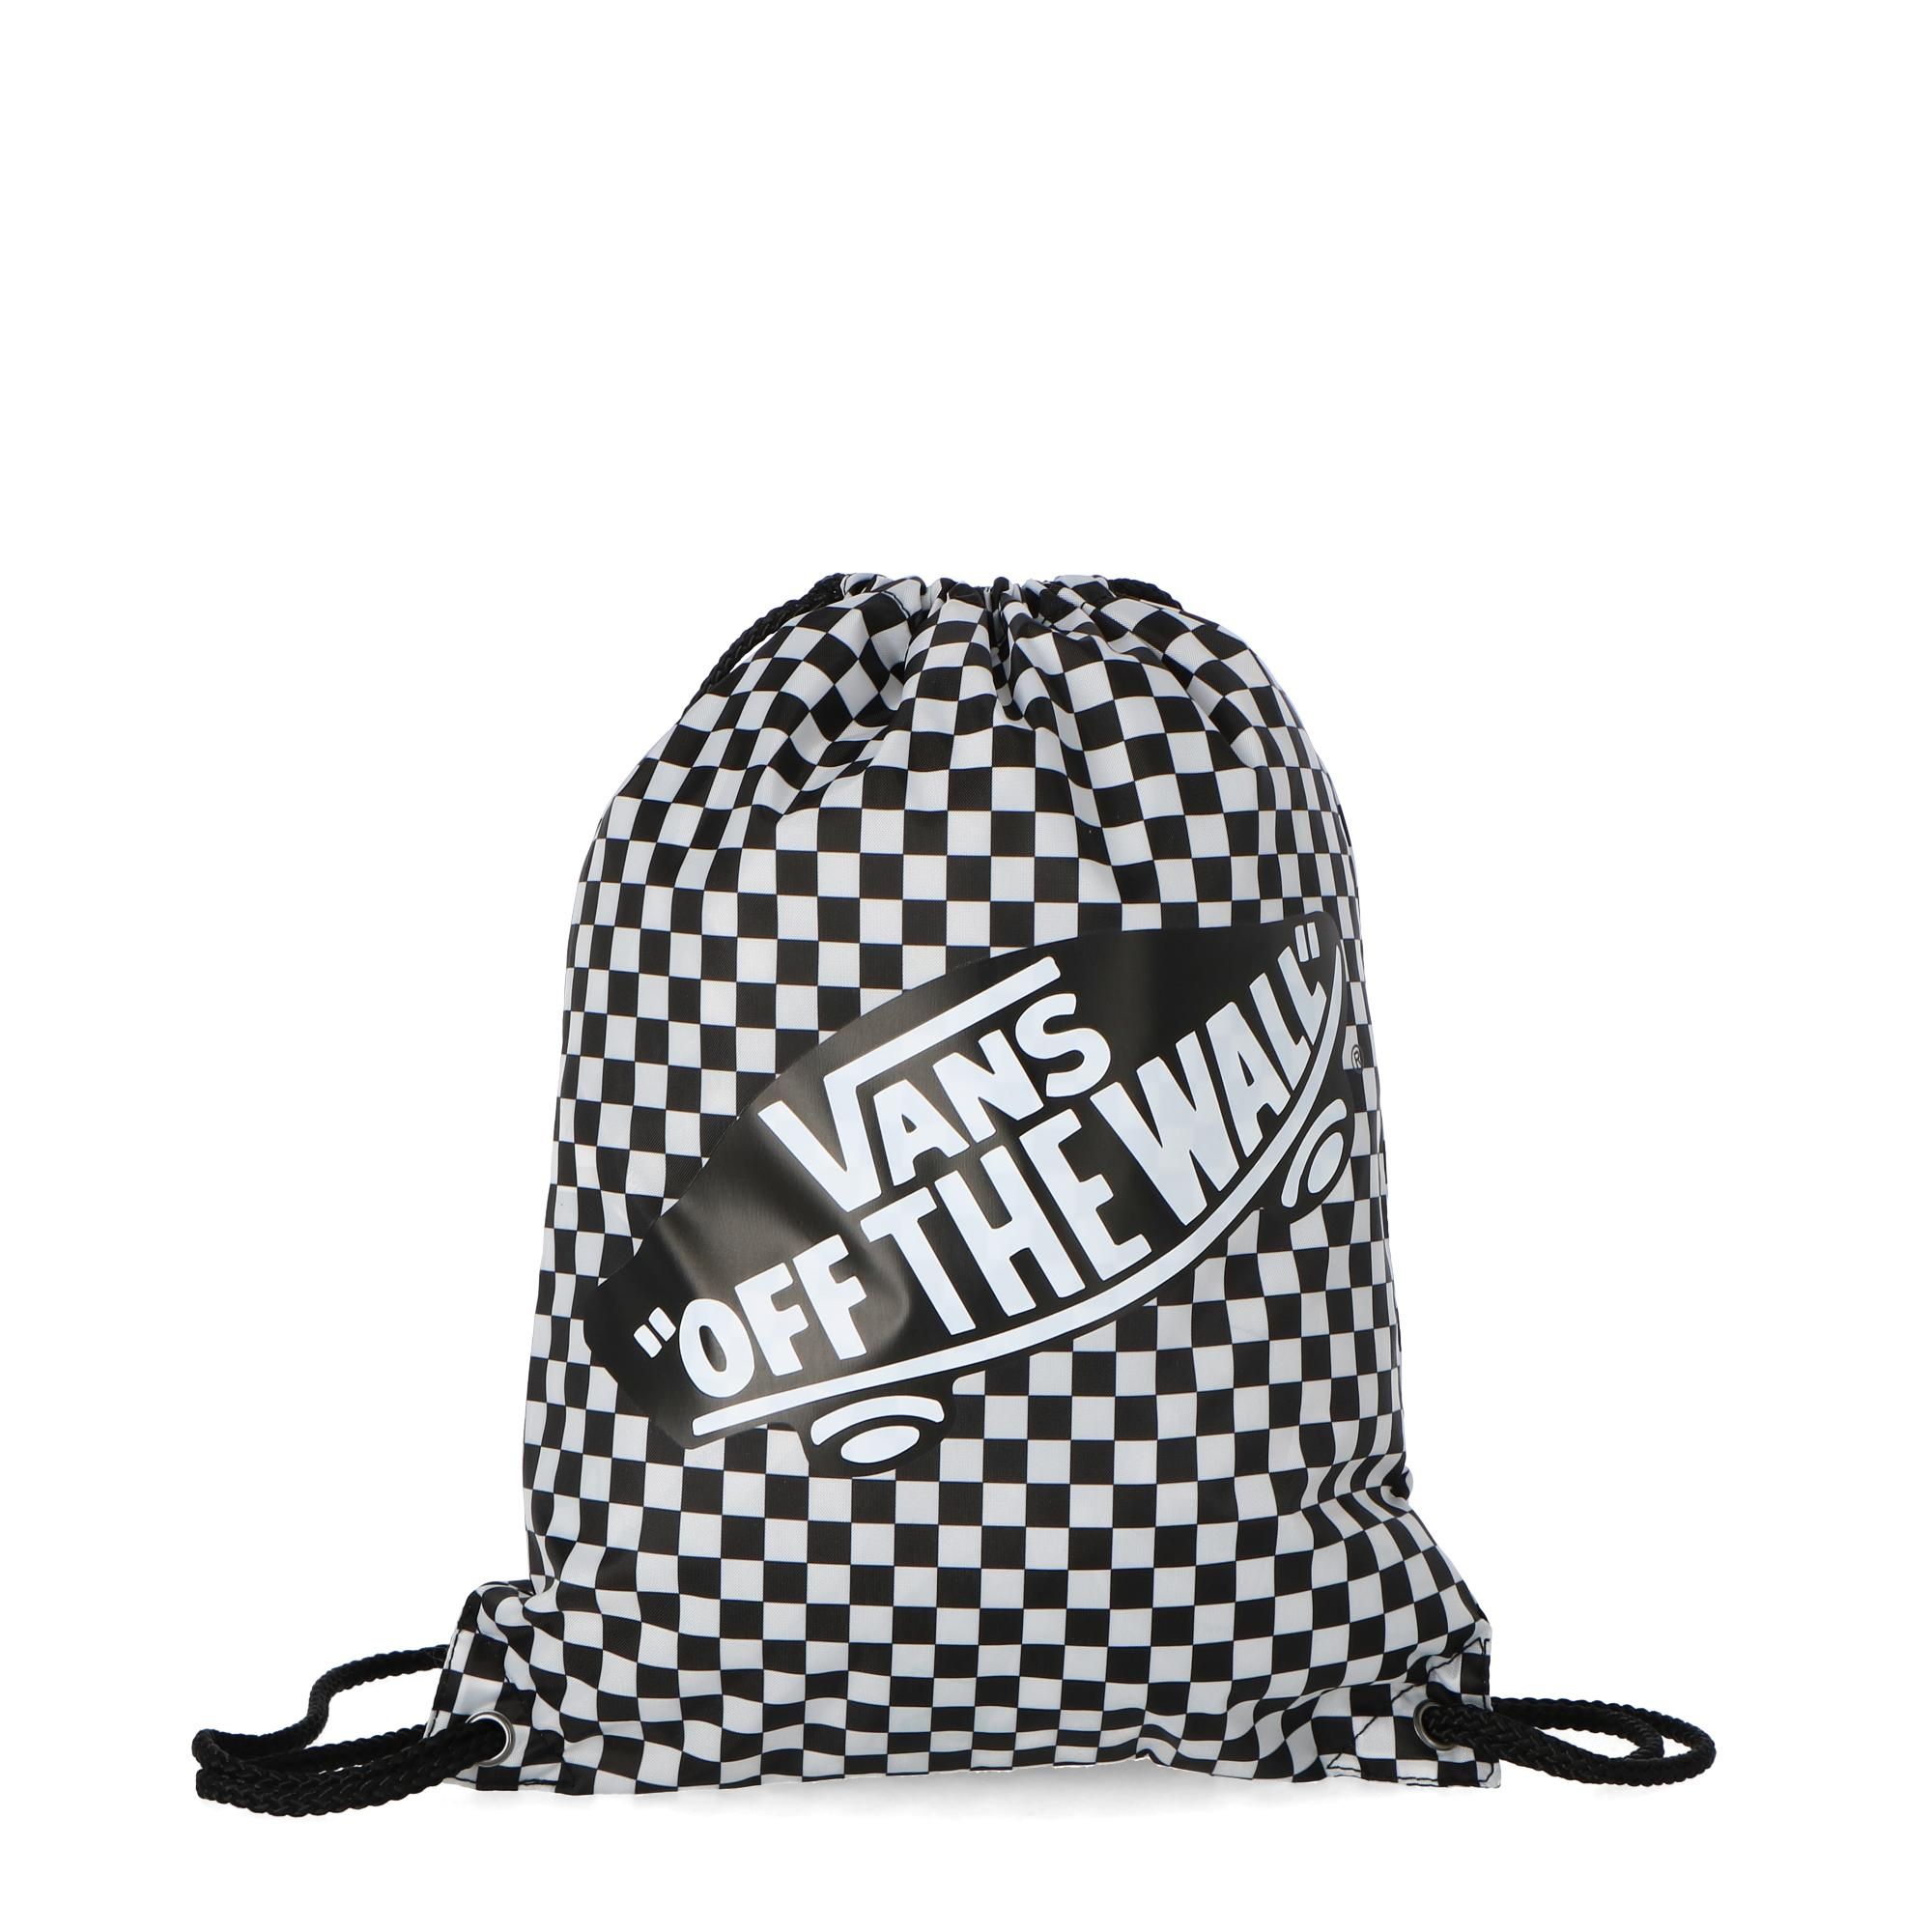 Vans Benched Bag Black/white checkerboard